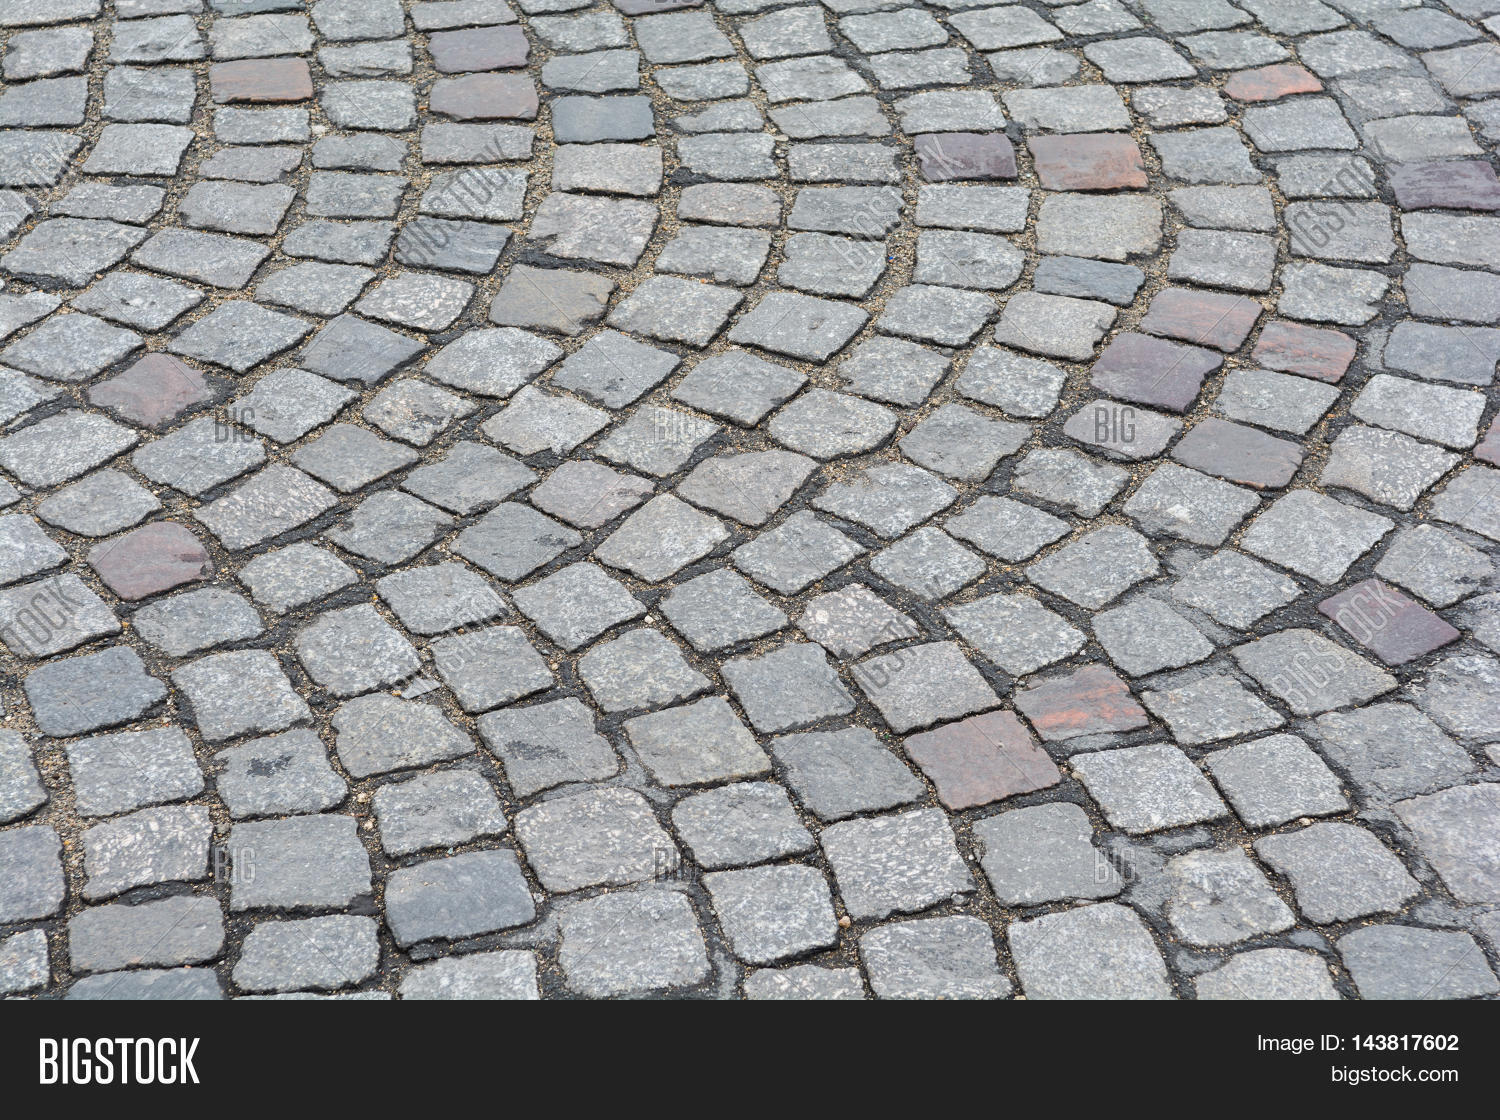 Stone Pavement In Paris : Stone street pavement from old paris in france stock photo